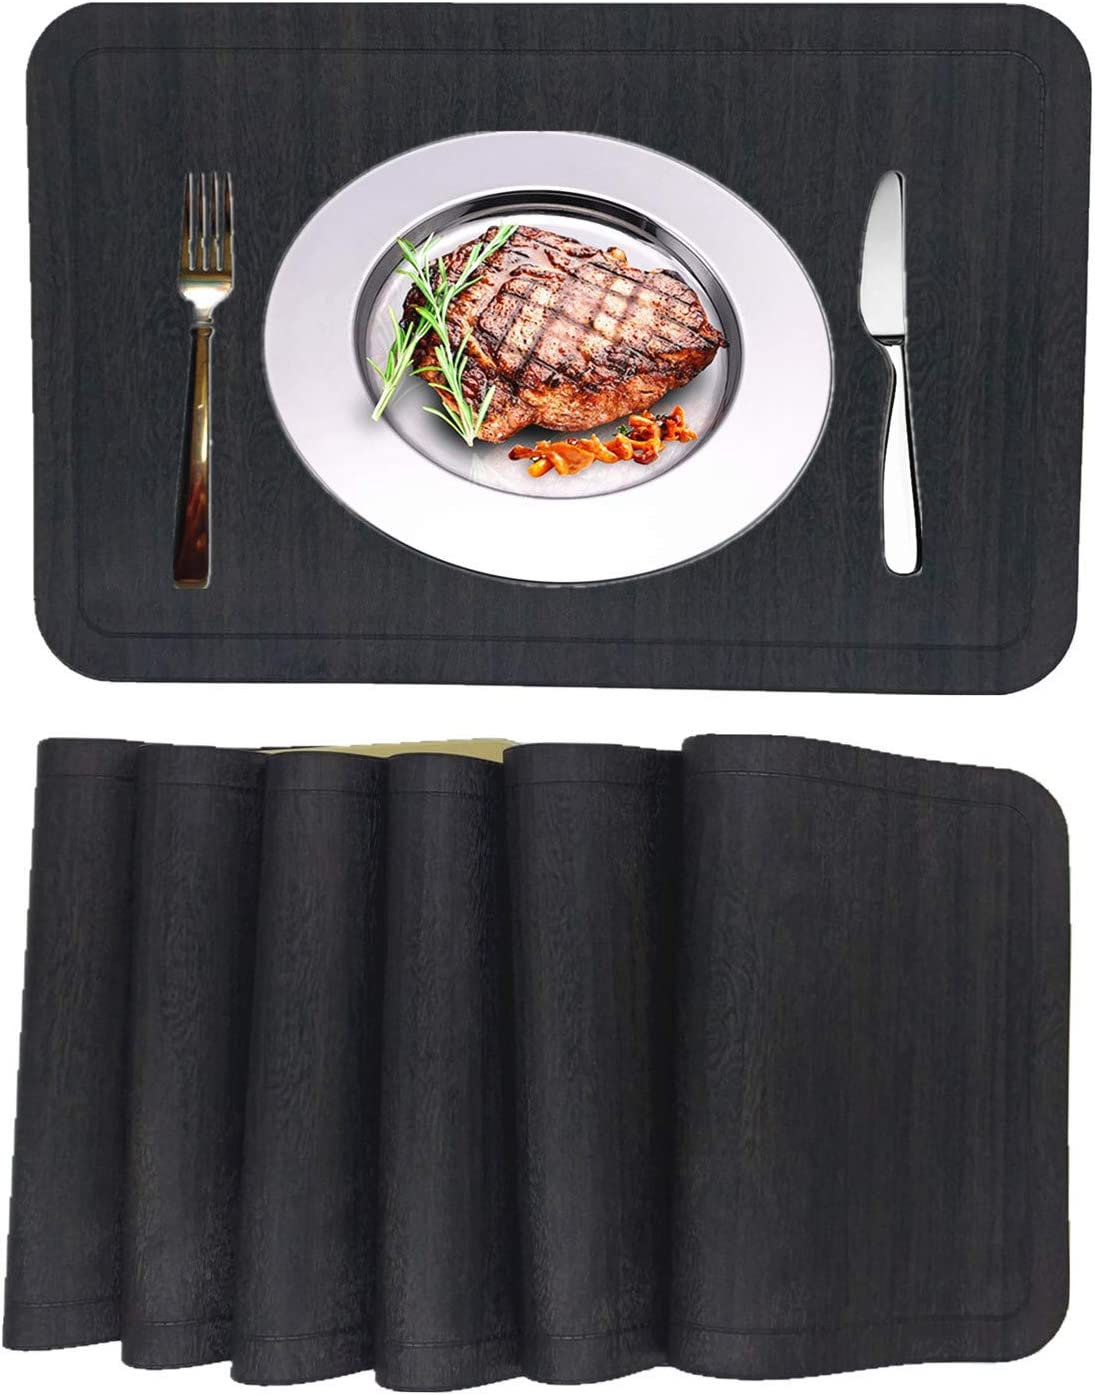 WANGCHAO Place mats Set of 6 Faux Leather Glossy Dining Table mats Waterproof Wearproof WIPEABLE Washable Heat Resistant Thermoforming Place Mats (Rectangular Placemats, Black1)